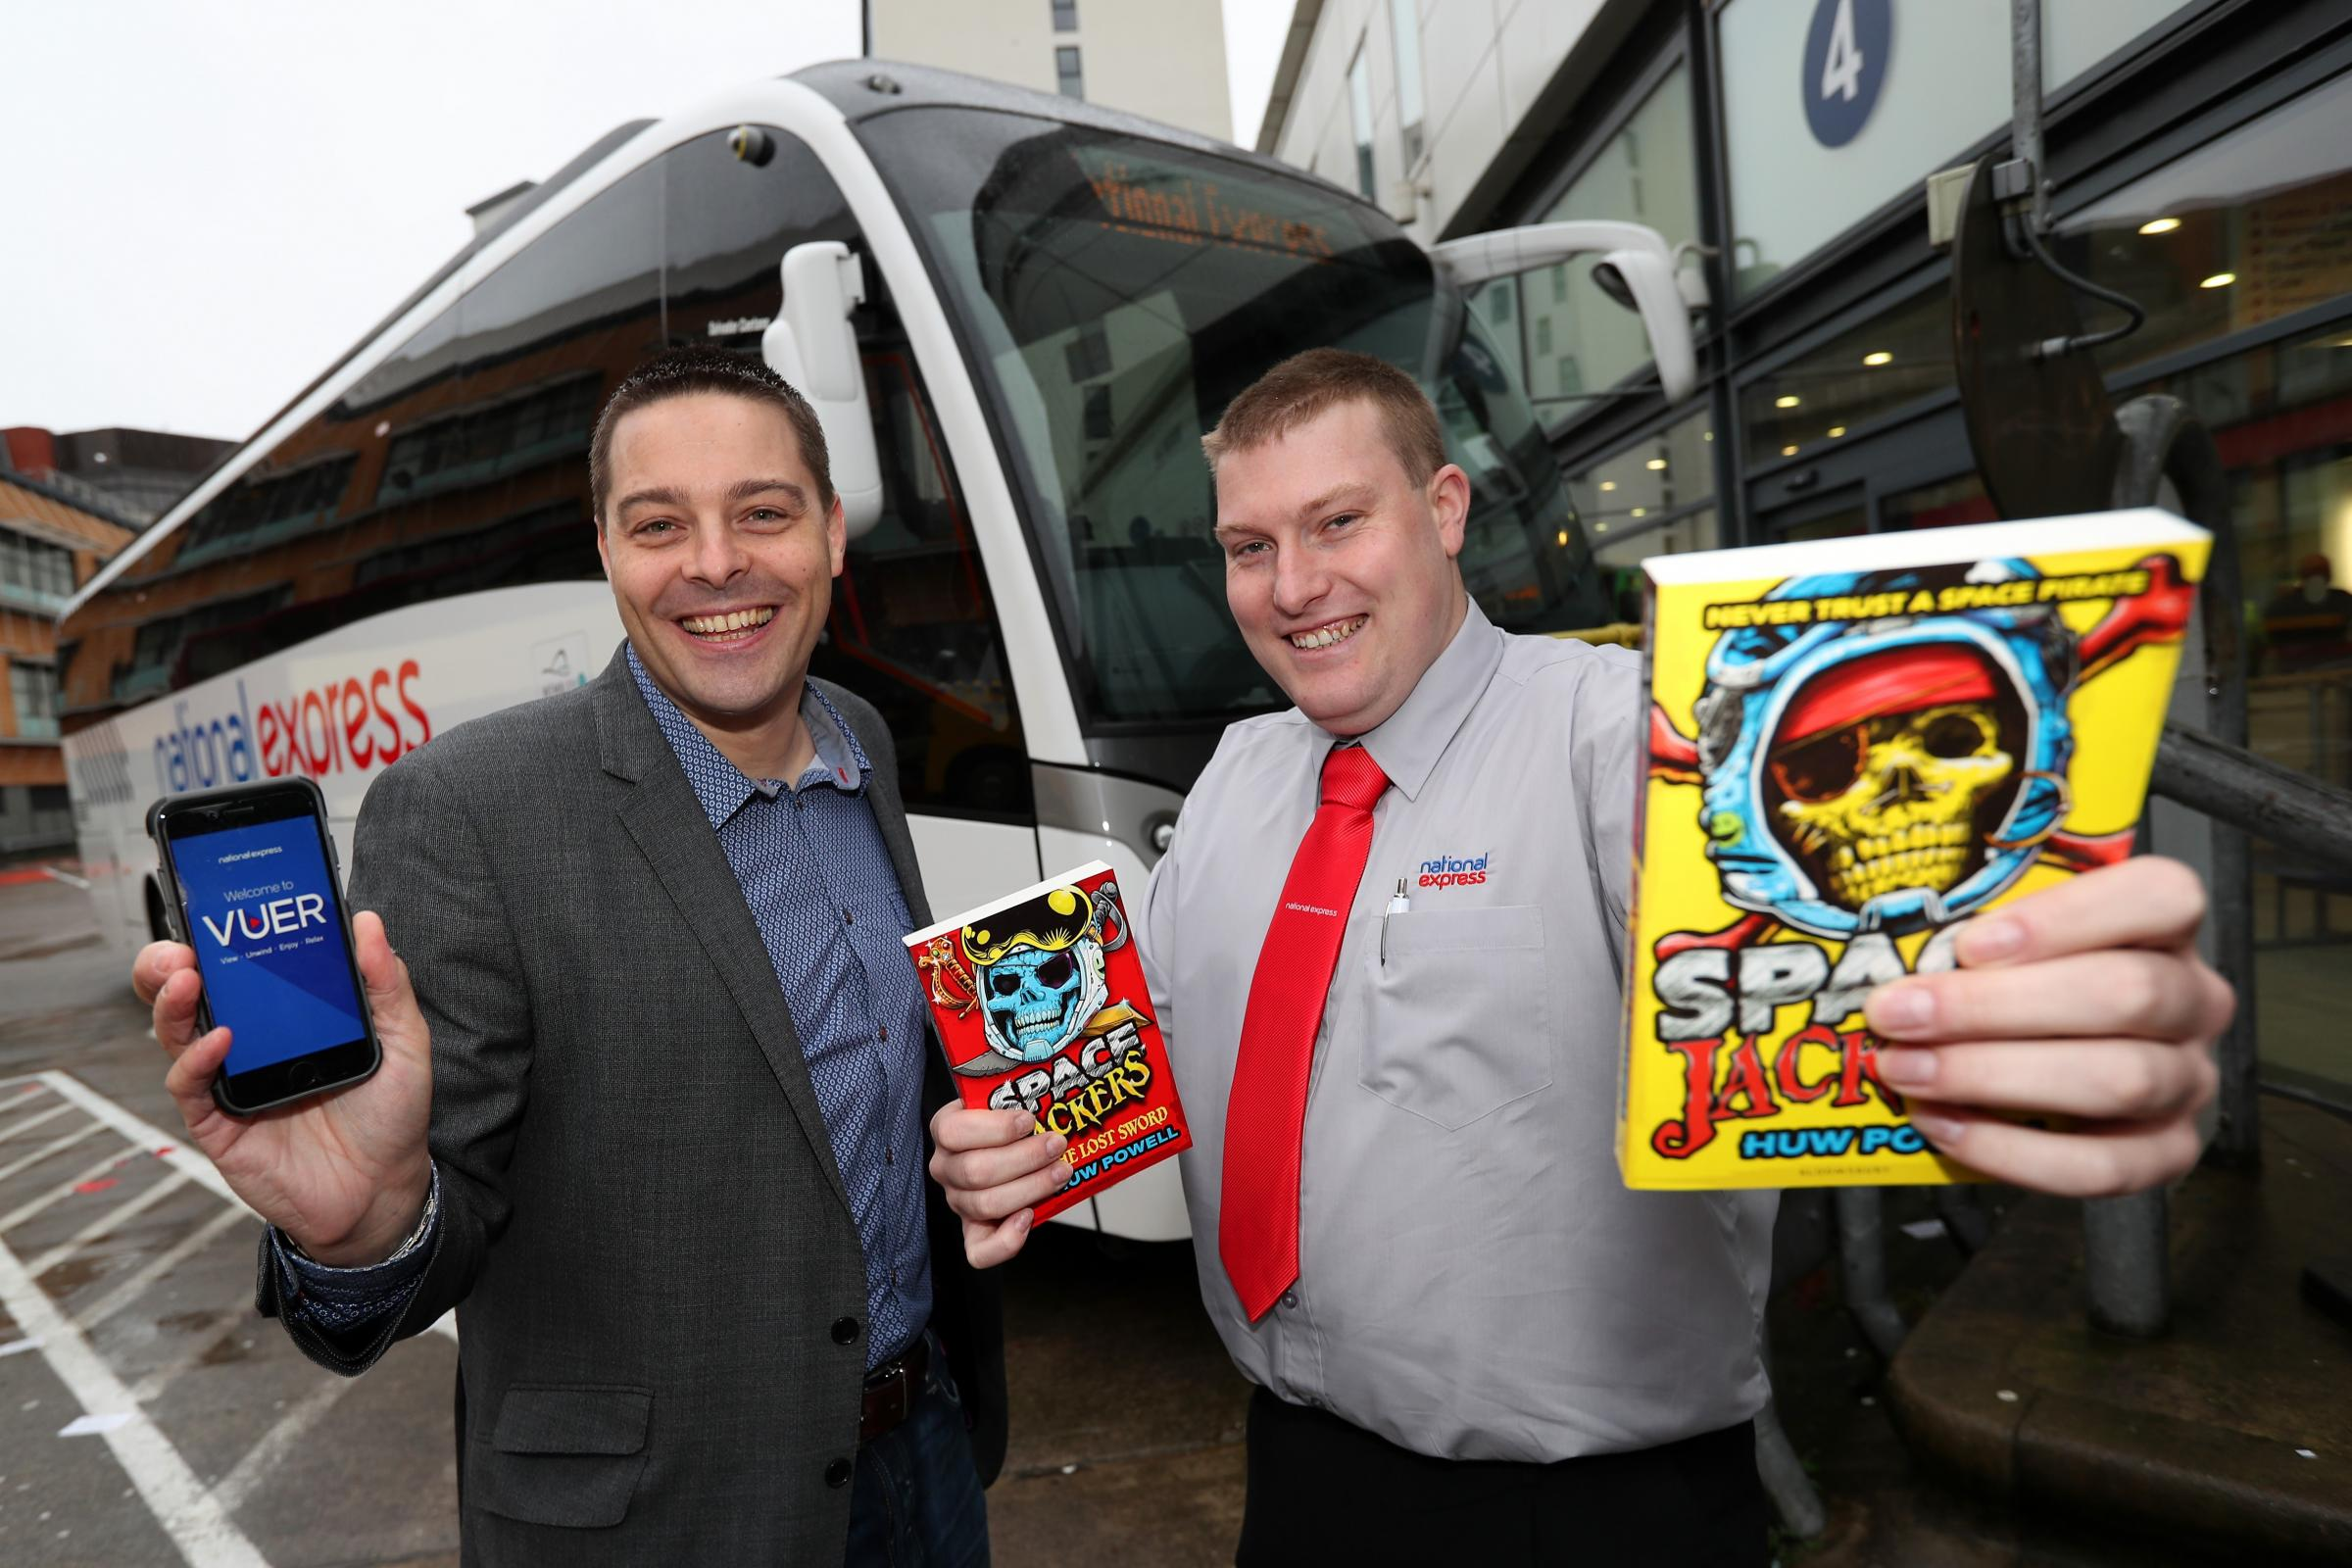 Author Huw Powell with National Express Driver Alex Holland